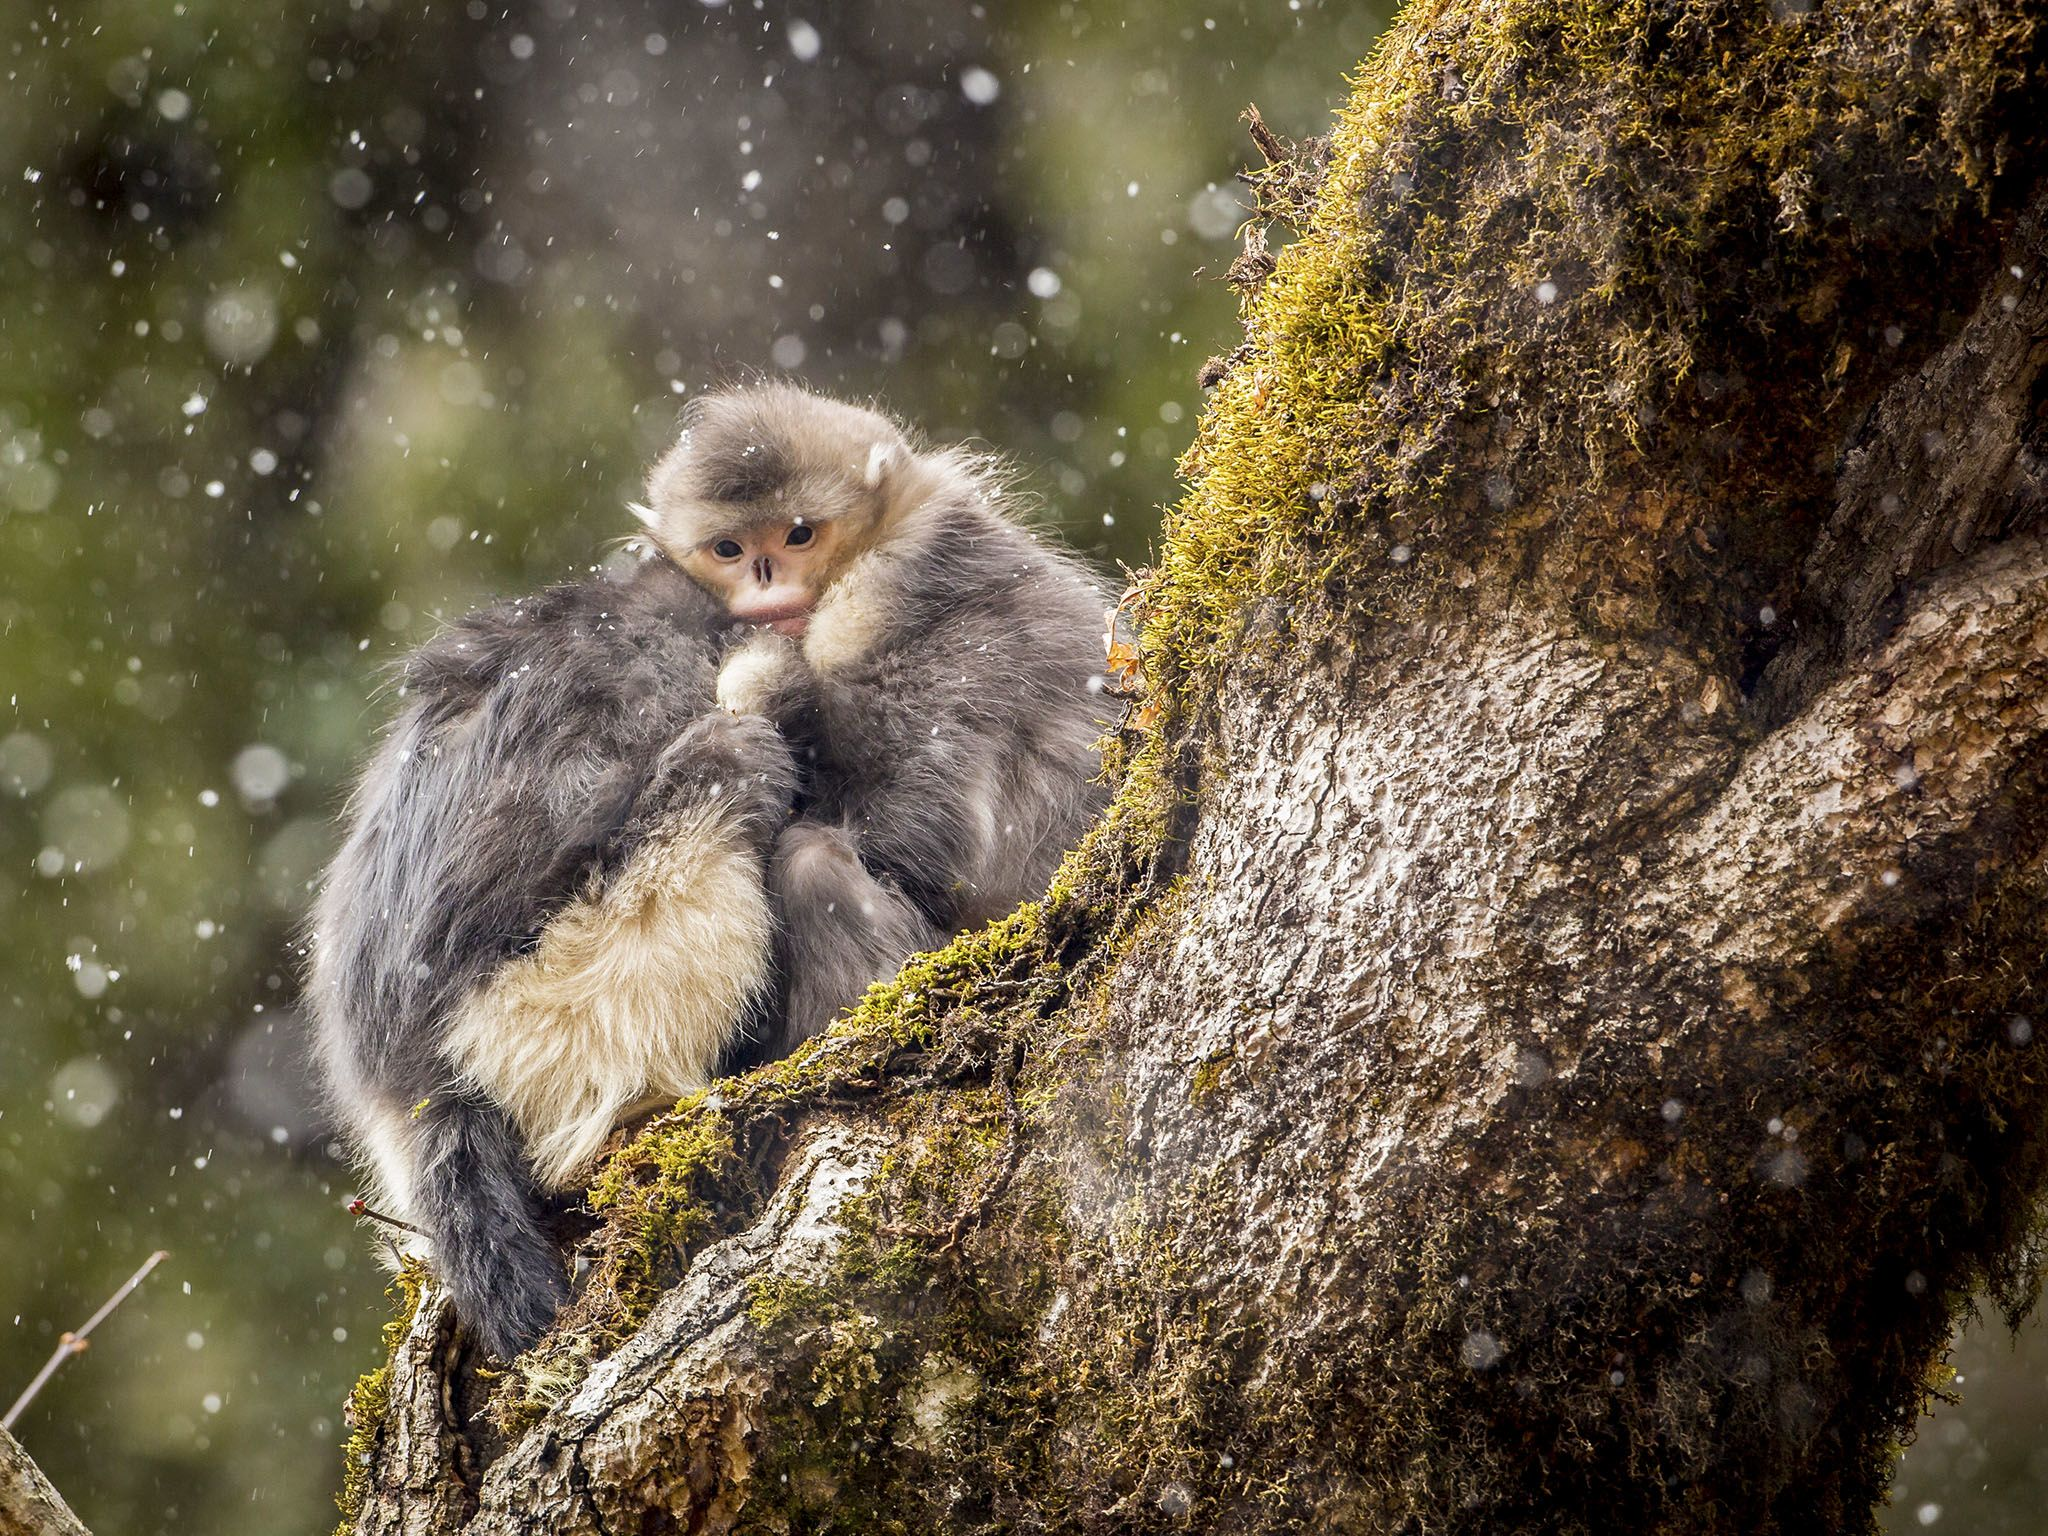 Two juveniles caught in the snow, snub-nosed monkey, Rhinopithecus bieti. This image is from... [Photo of the day - November 2015]